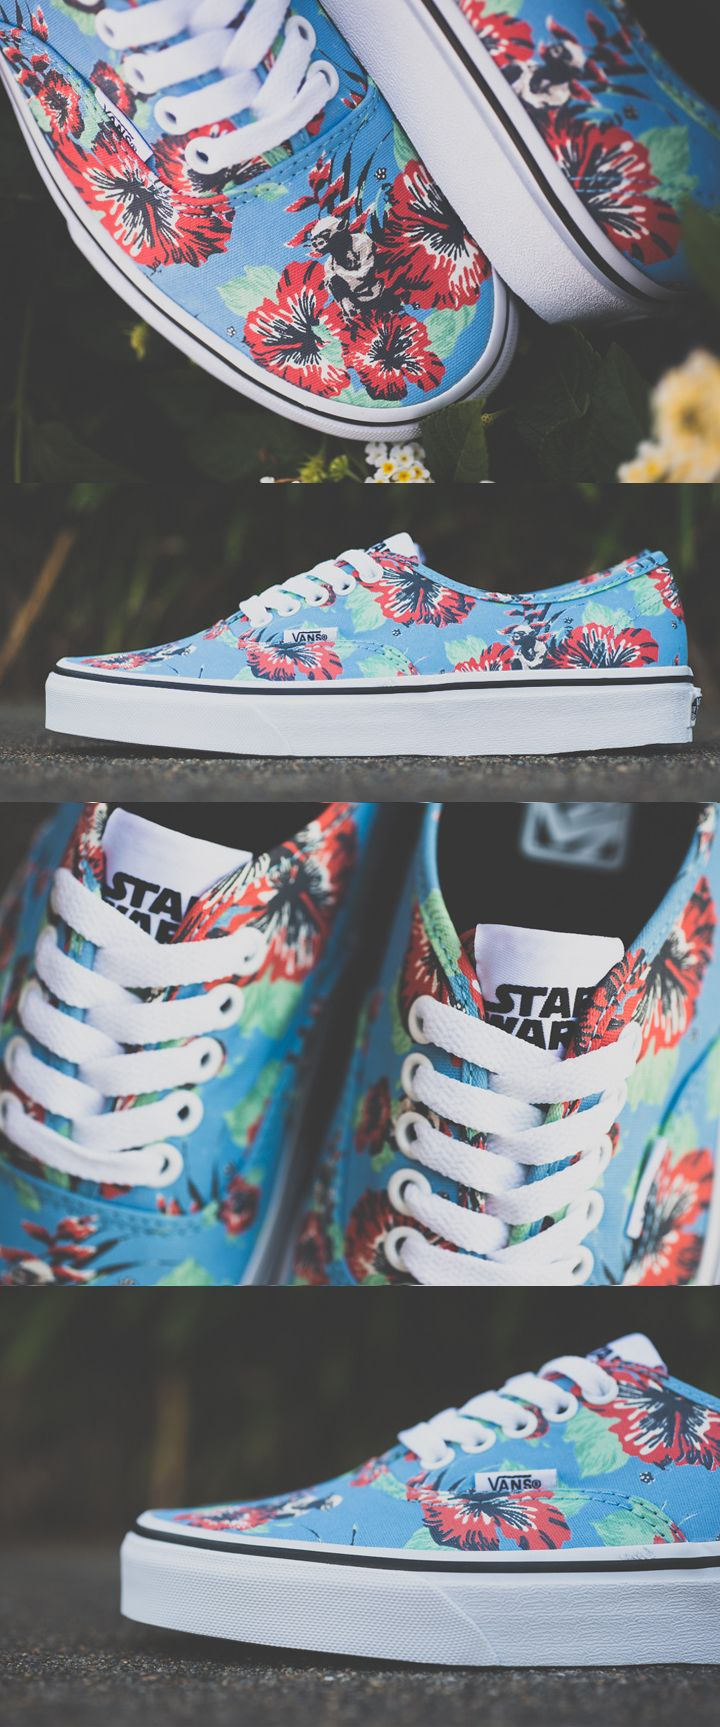 Vans x Star Wars // Yoda Aloha Authentic Shoes...These make me happy, star wars and floral pattern all in one